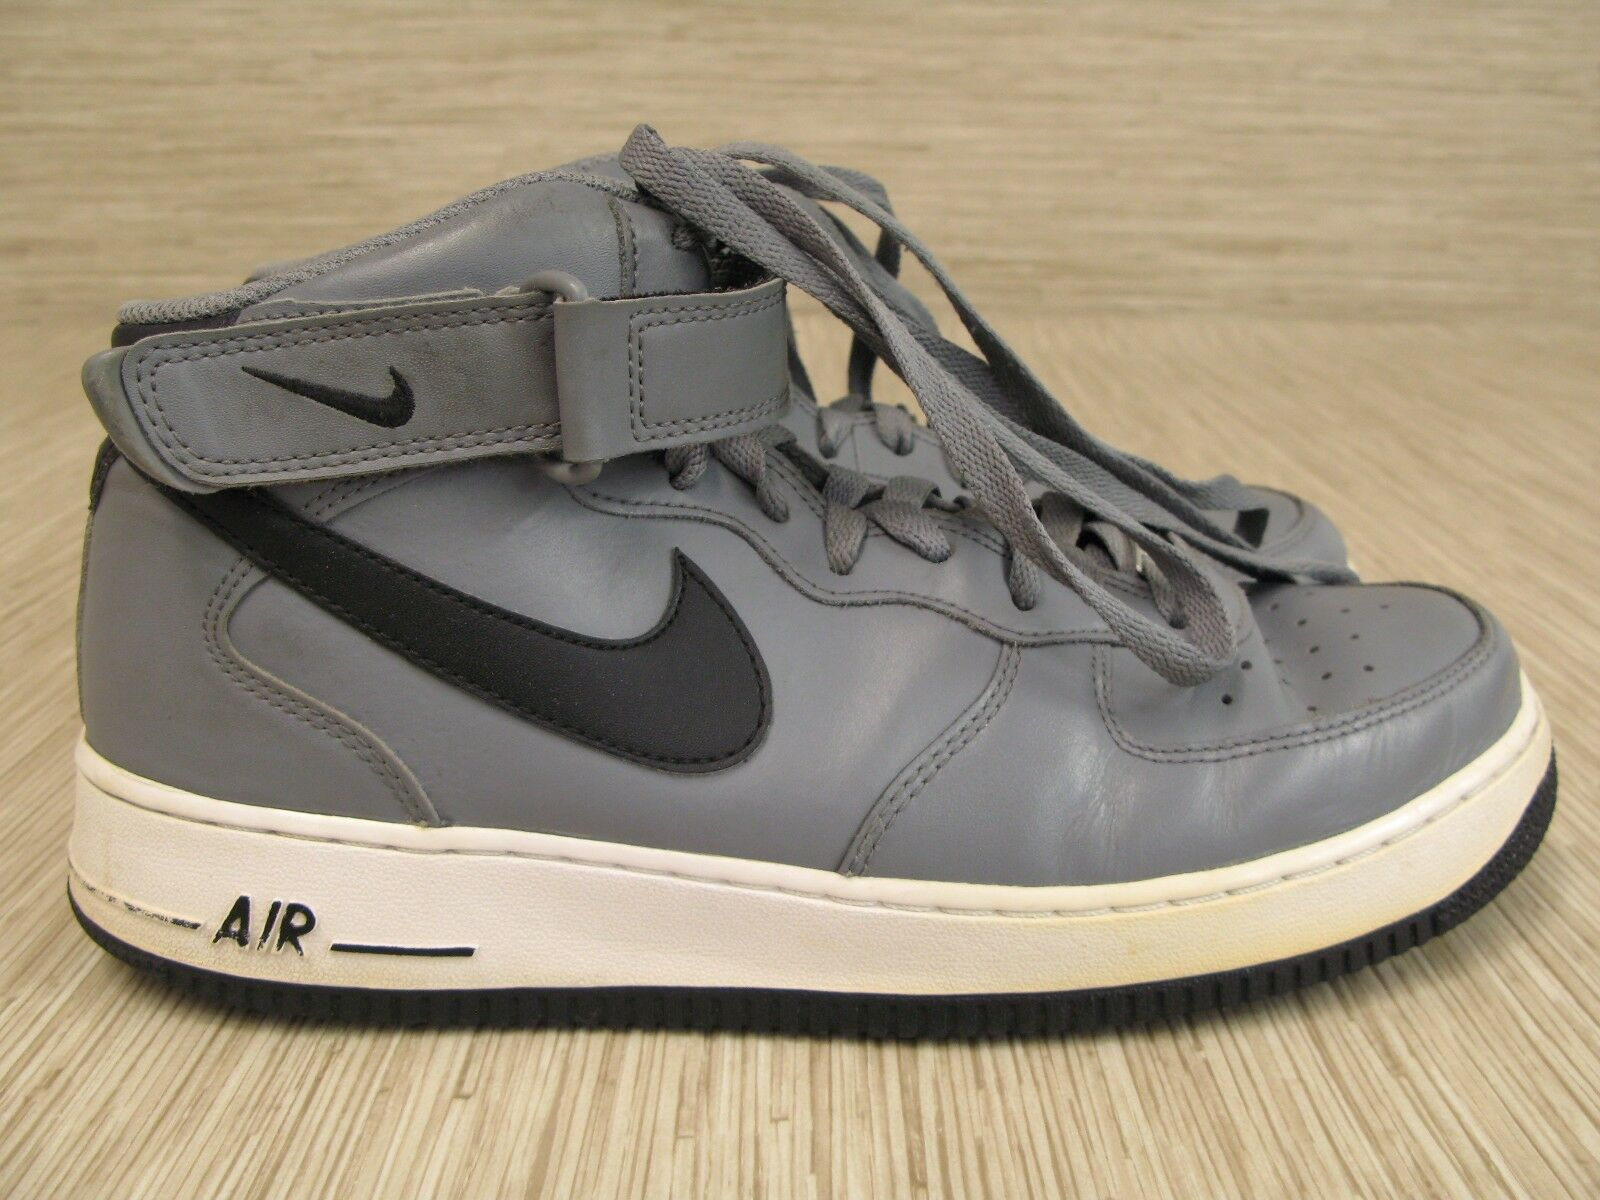 Nike Shoes Air AF1 Gray Leather Shoes Nike Men's Size US 10.5 Hightop Basketball 087fdc